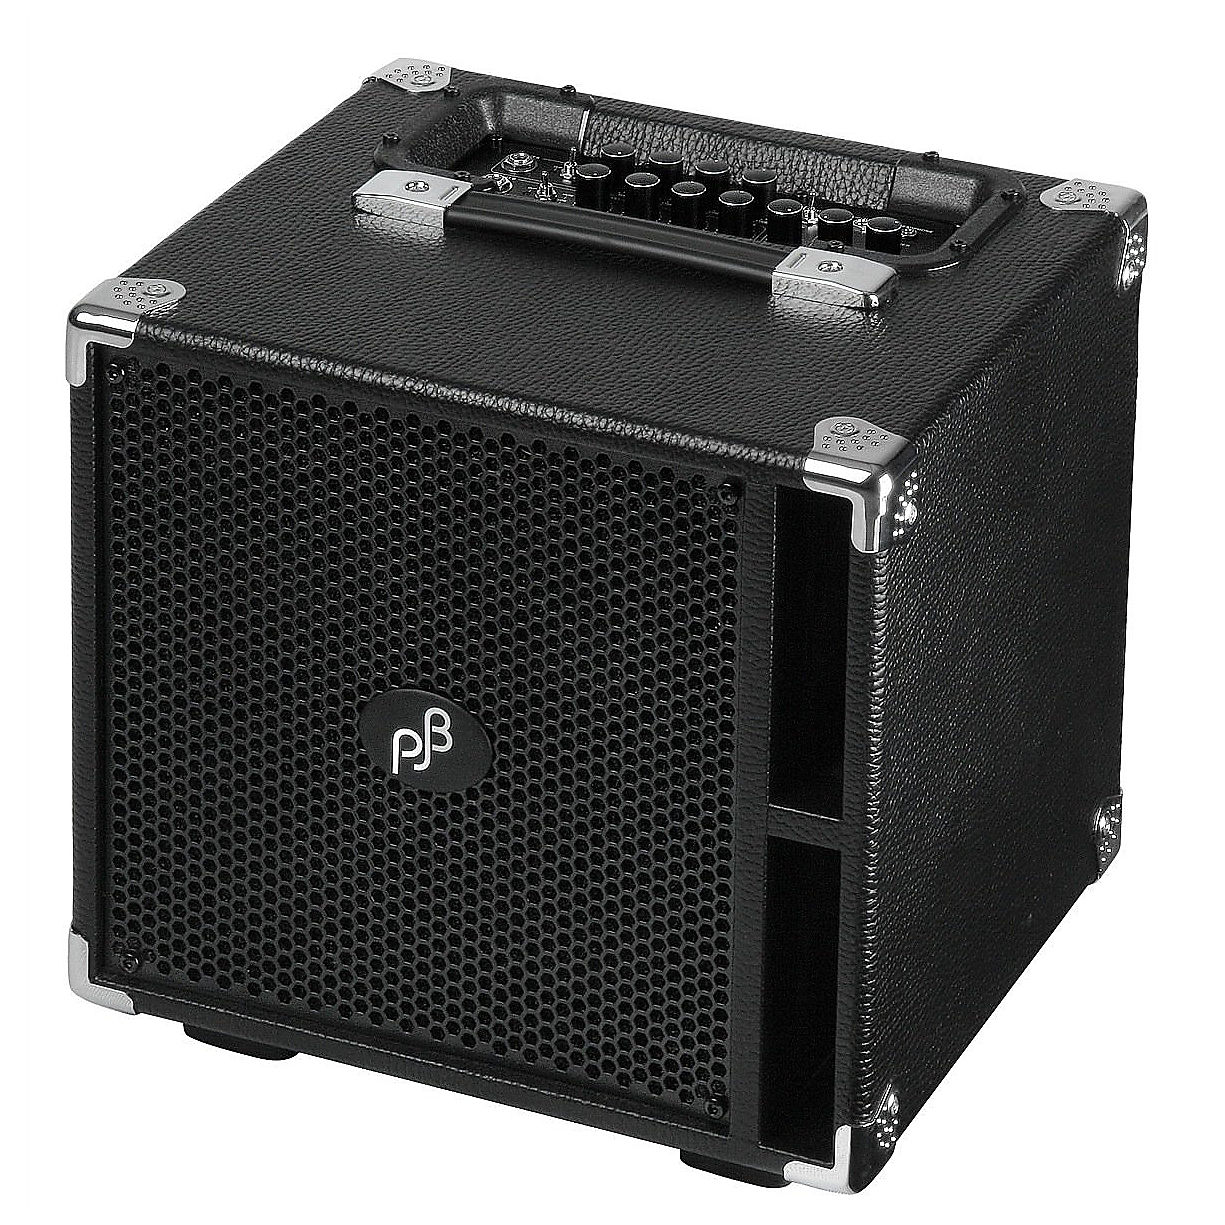 Phil Jones Bass BG400 Suitcase Bass Combo Amplifier (300 Watts, 4x5 Inch), Black